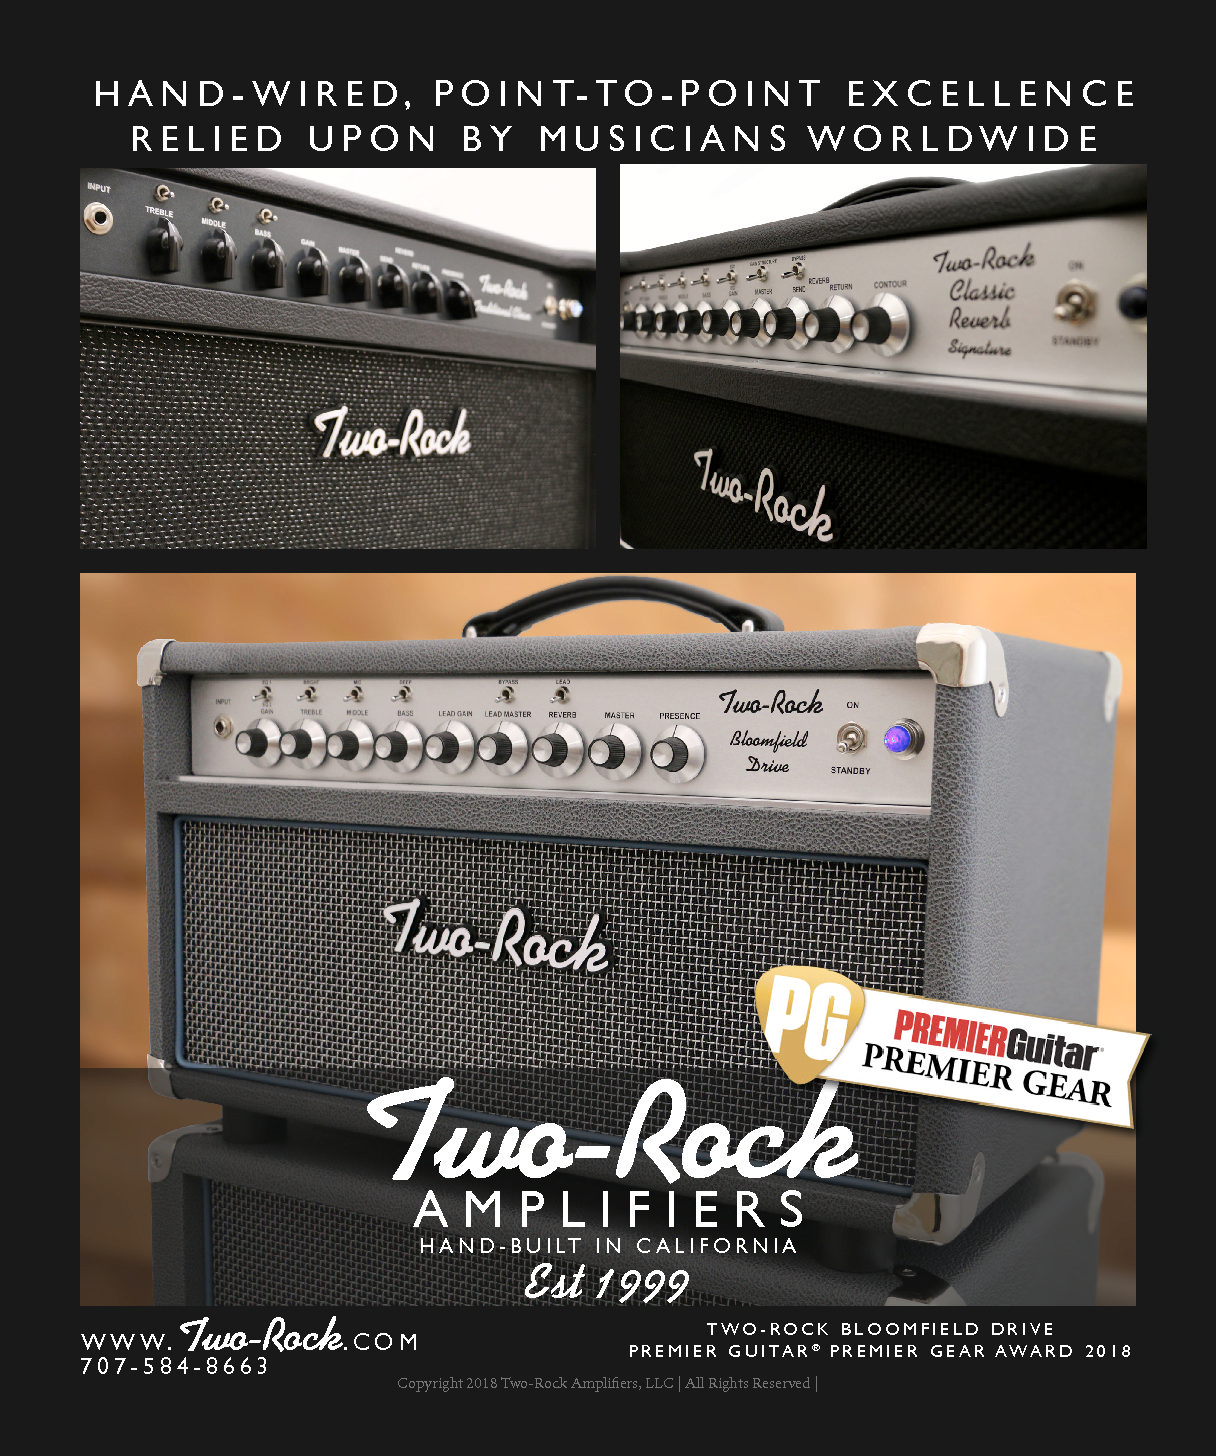 HOME - Two-Rock Amplifiers